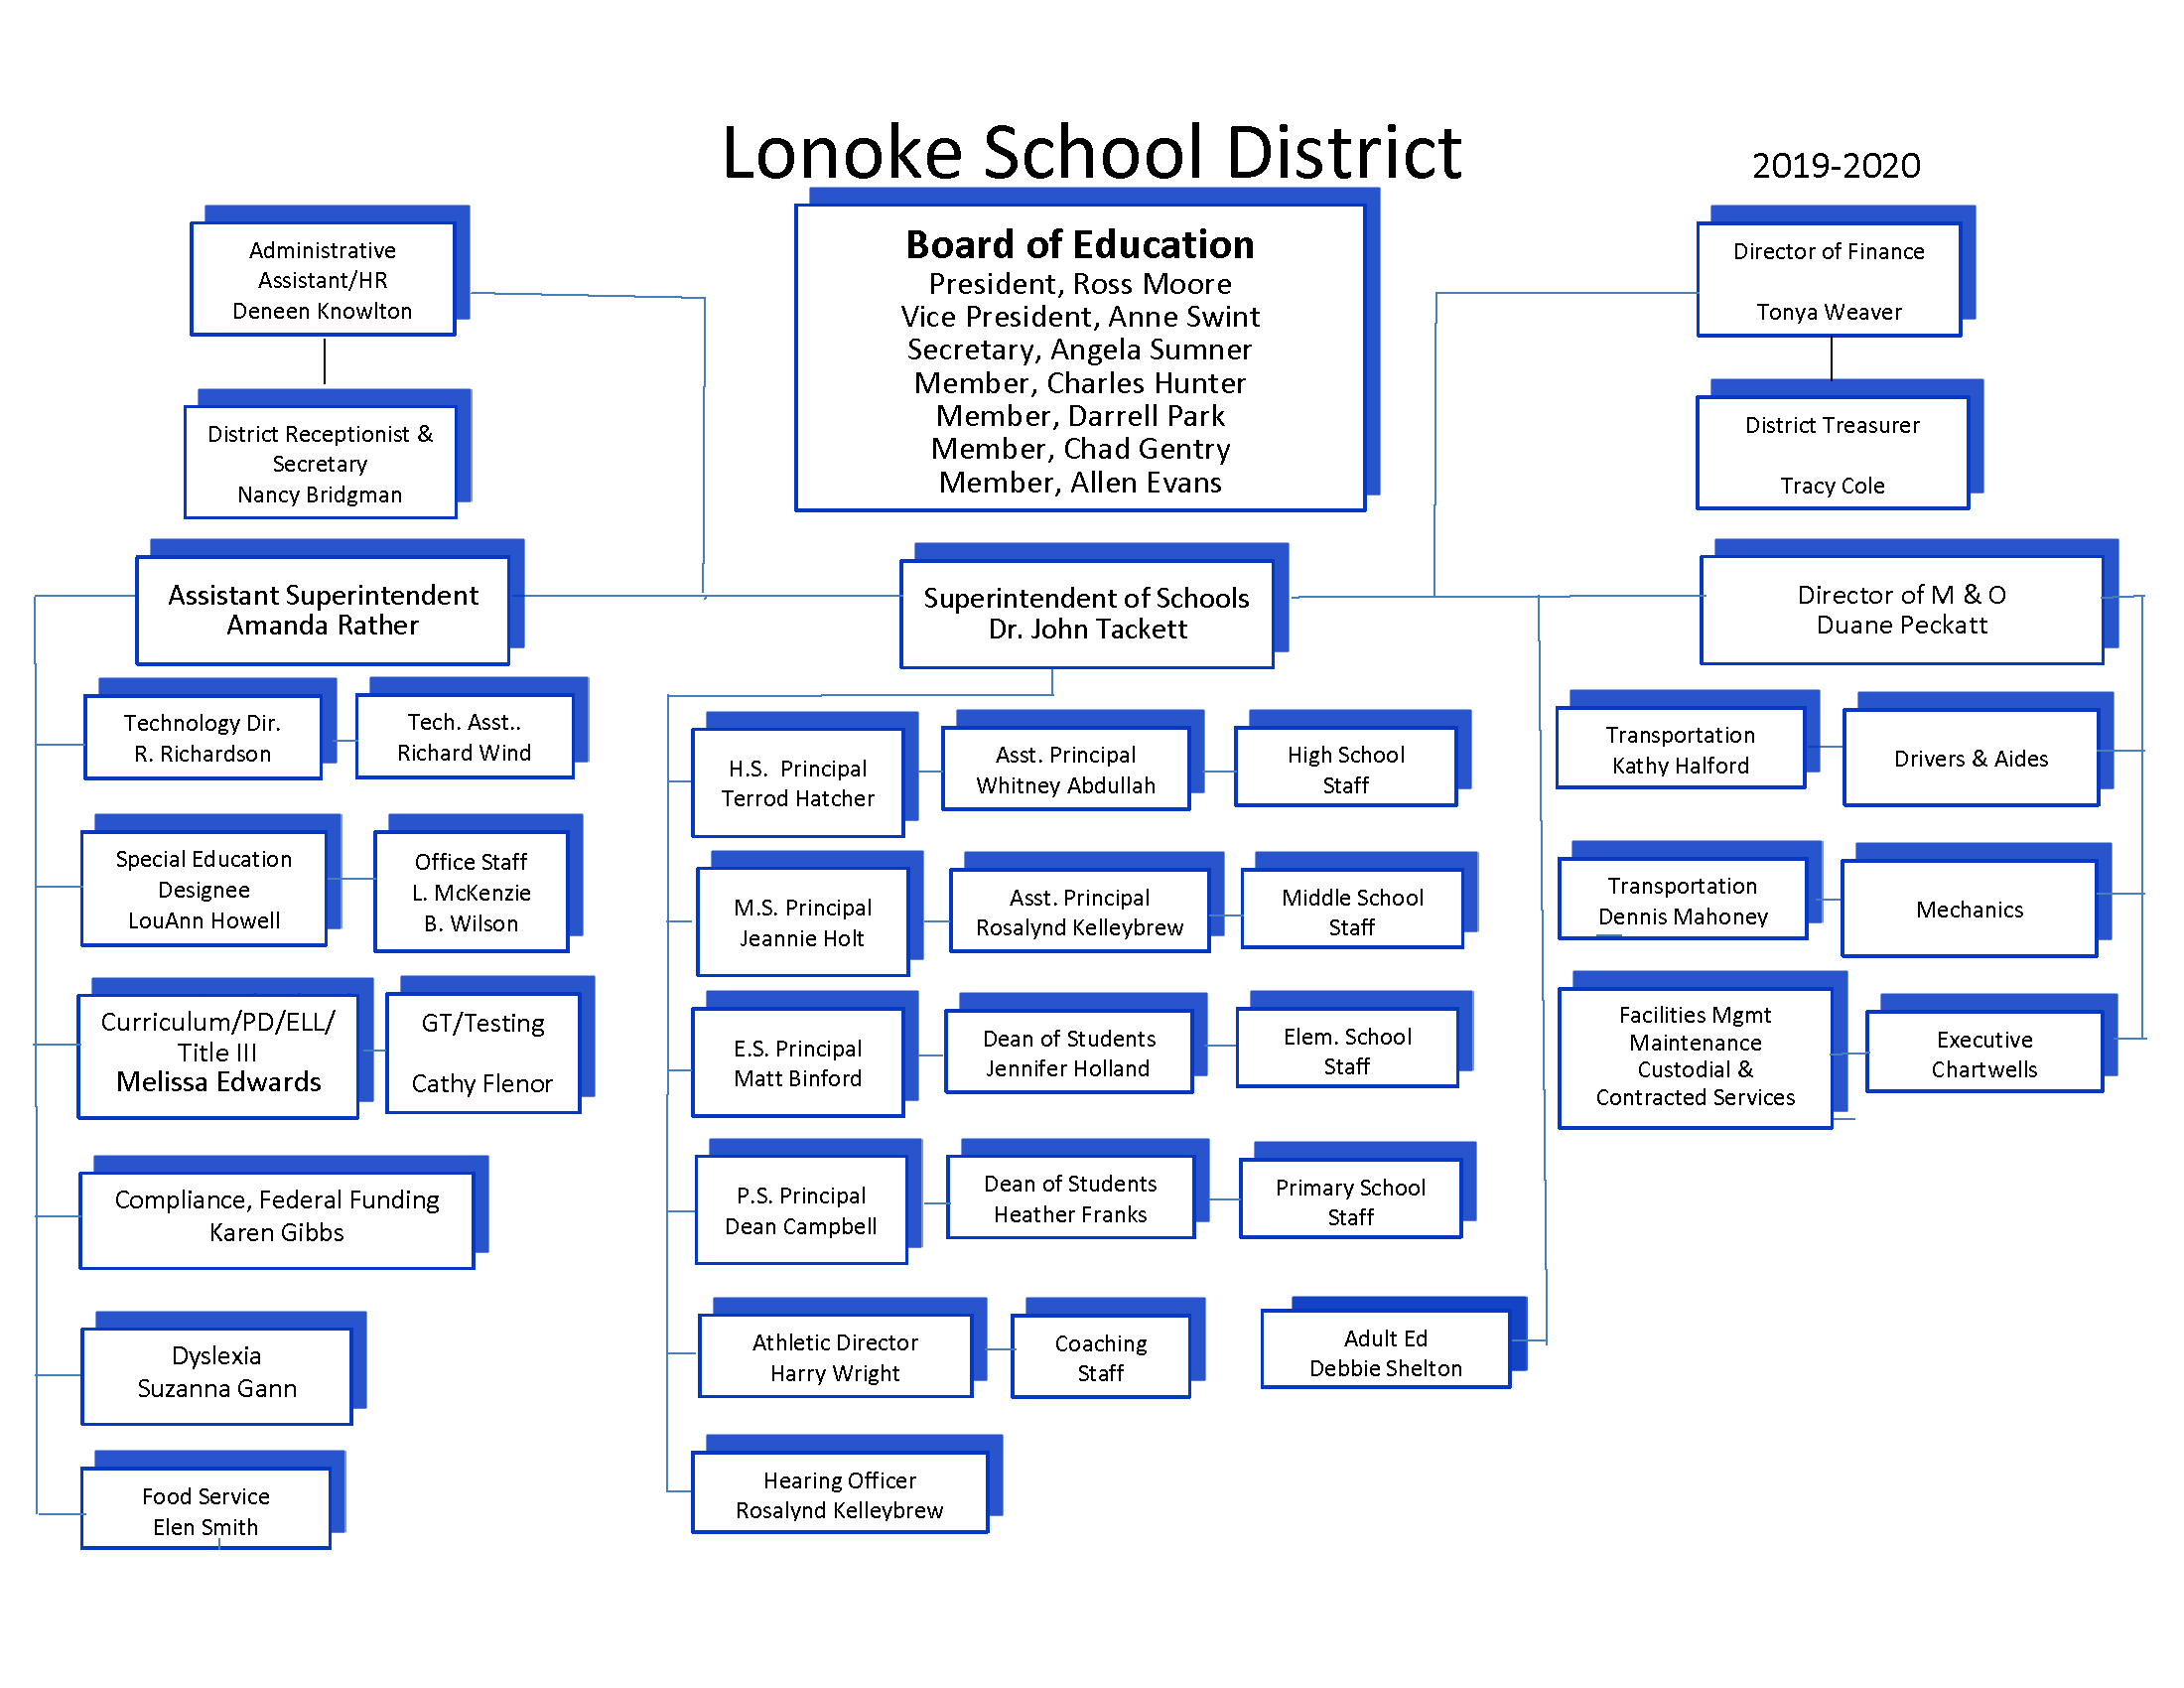 Organizational Chart for LPSD for 2019-2020